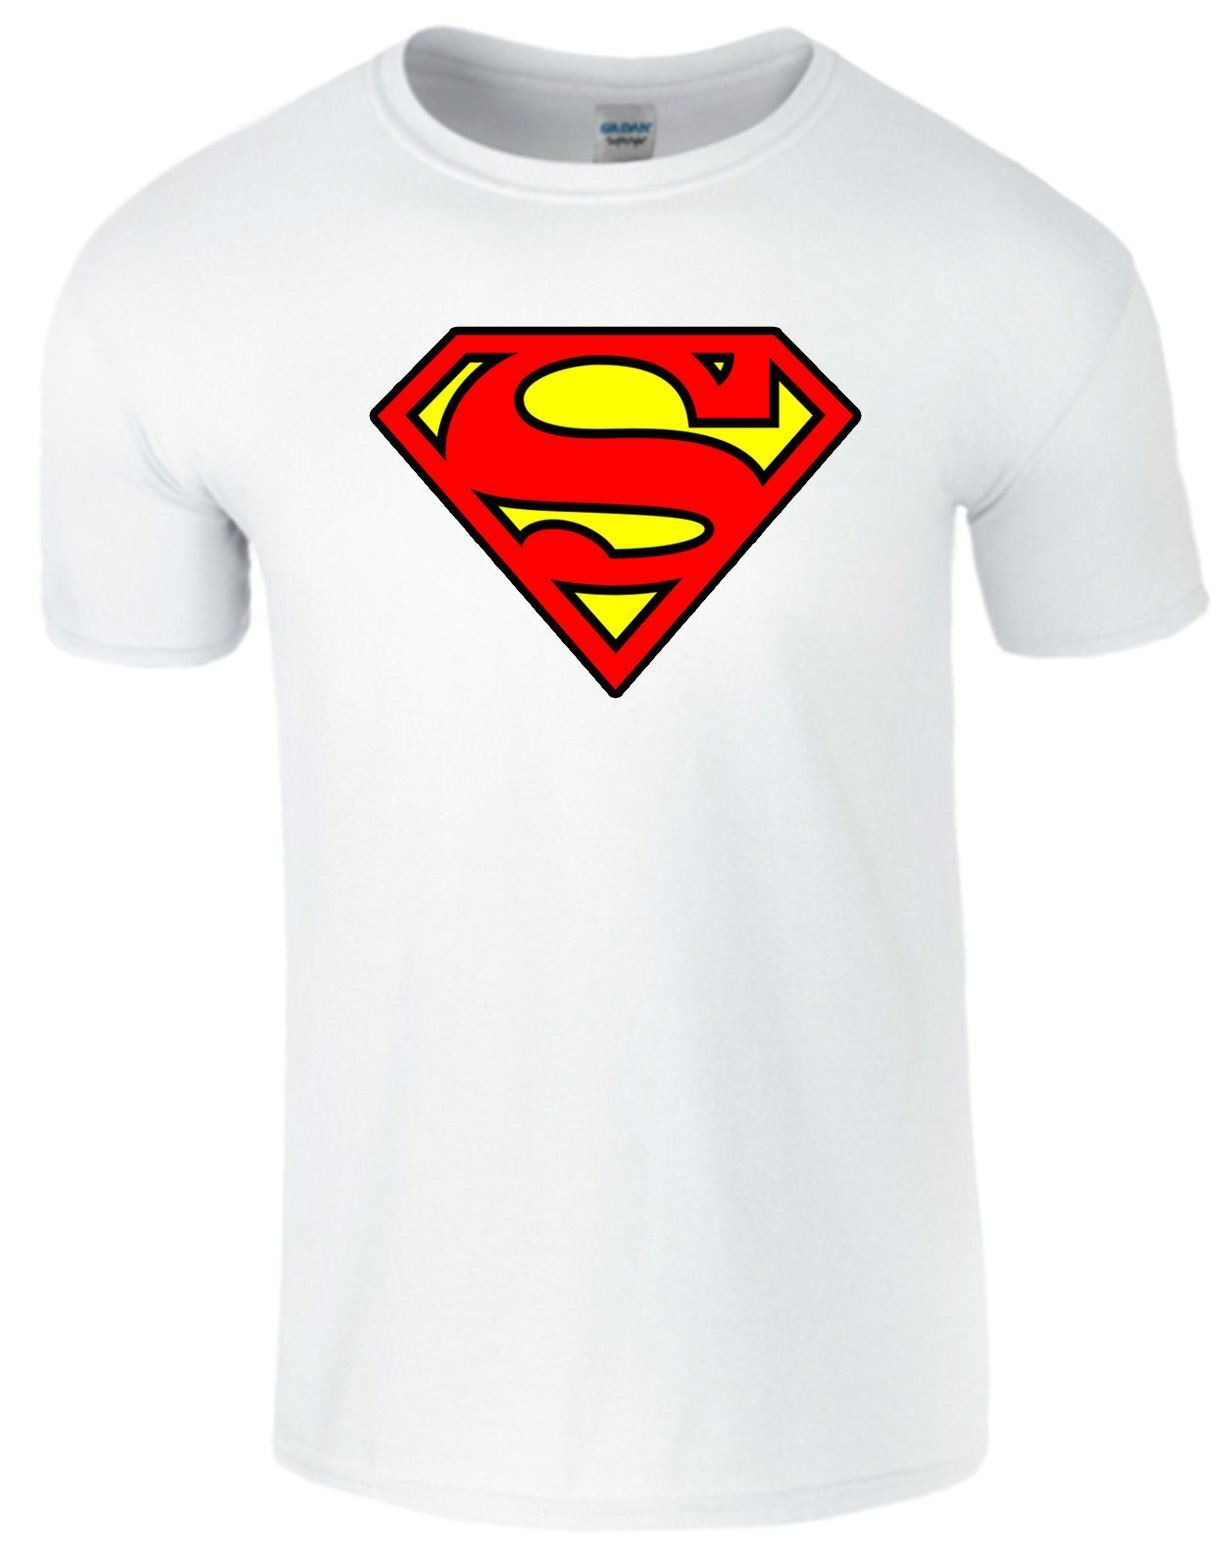 Superman-homme-unisexe-t-shirt-super-heros-logo-imprime-a-manches-courtes-top-t-shirt